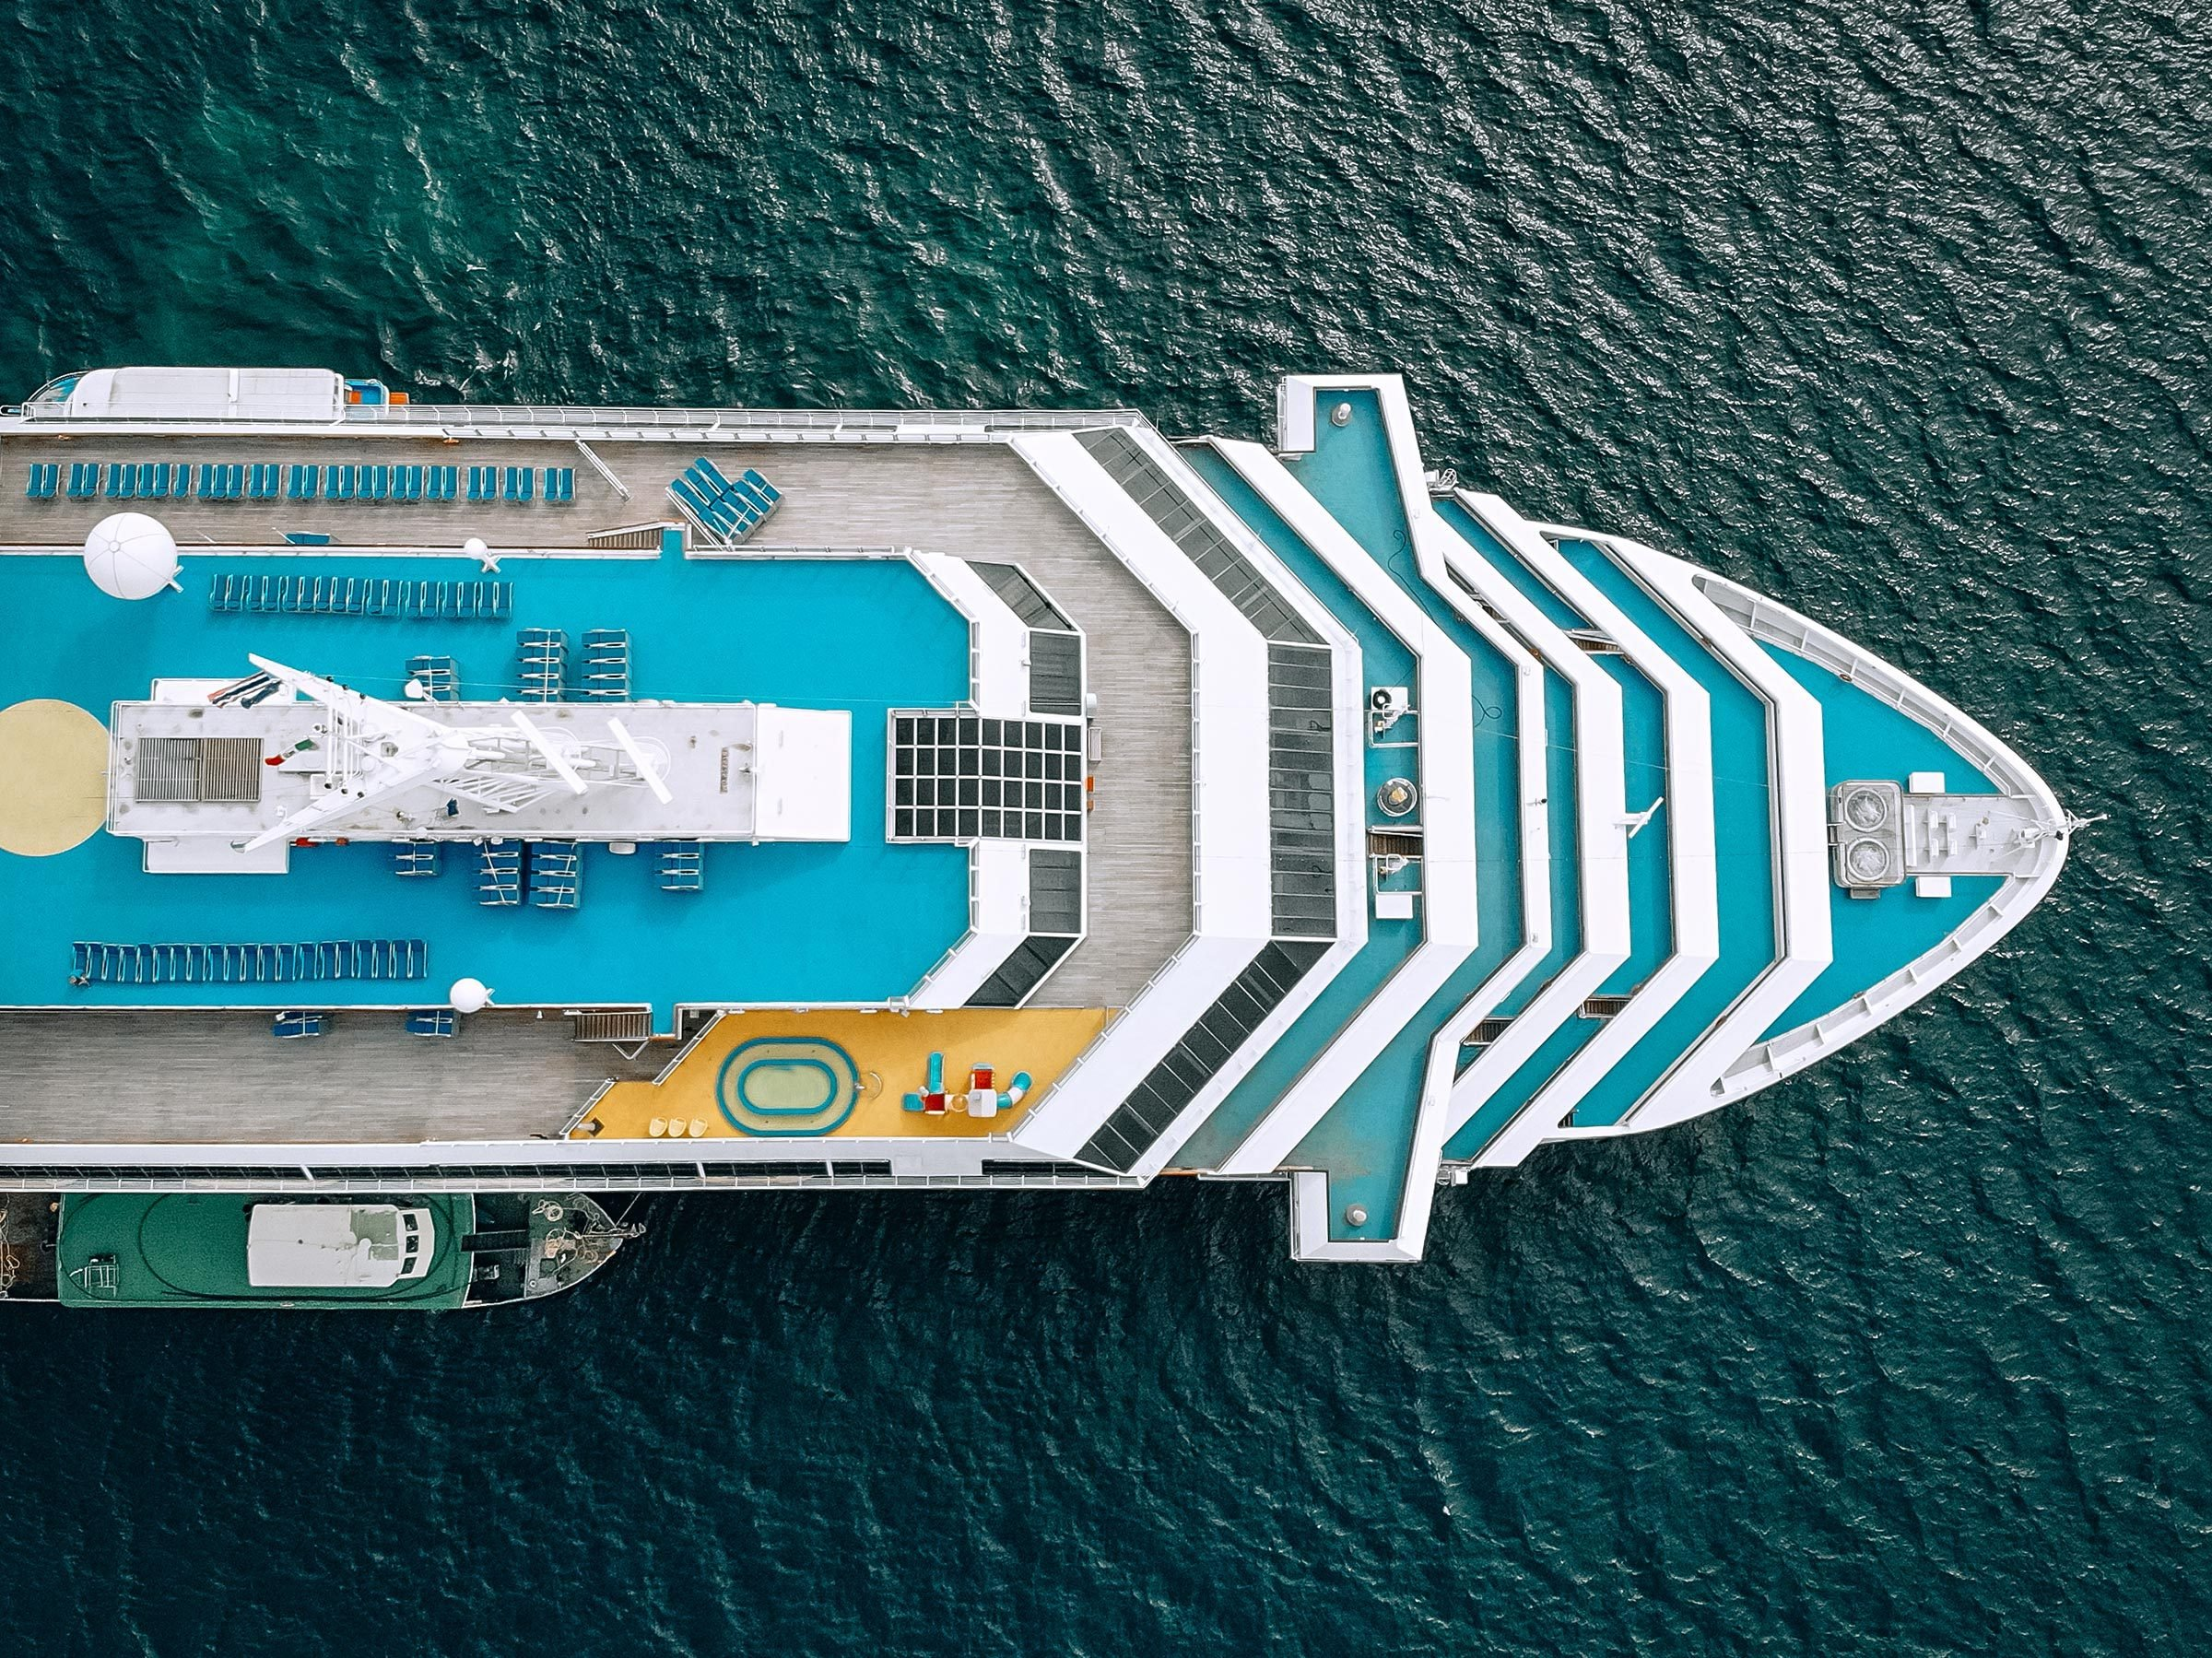 Nose of the blue cruise ship in the sea - top view. The Andaman sea - Aerial image. Beautiful sea landscape